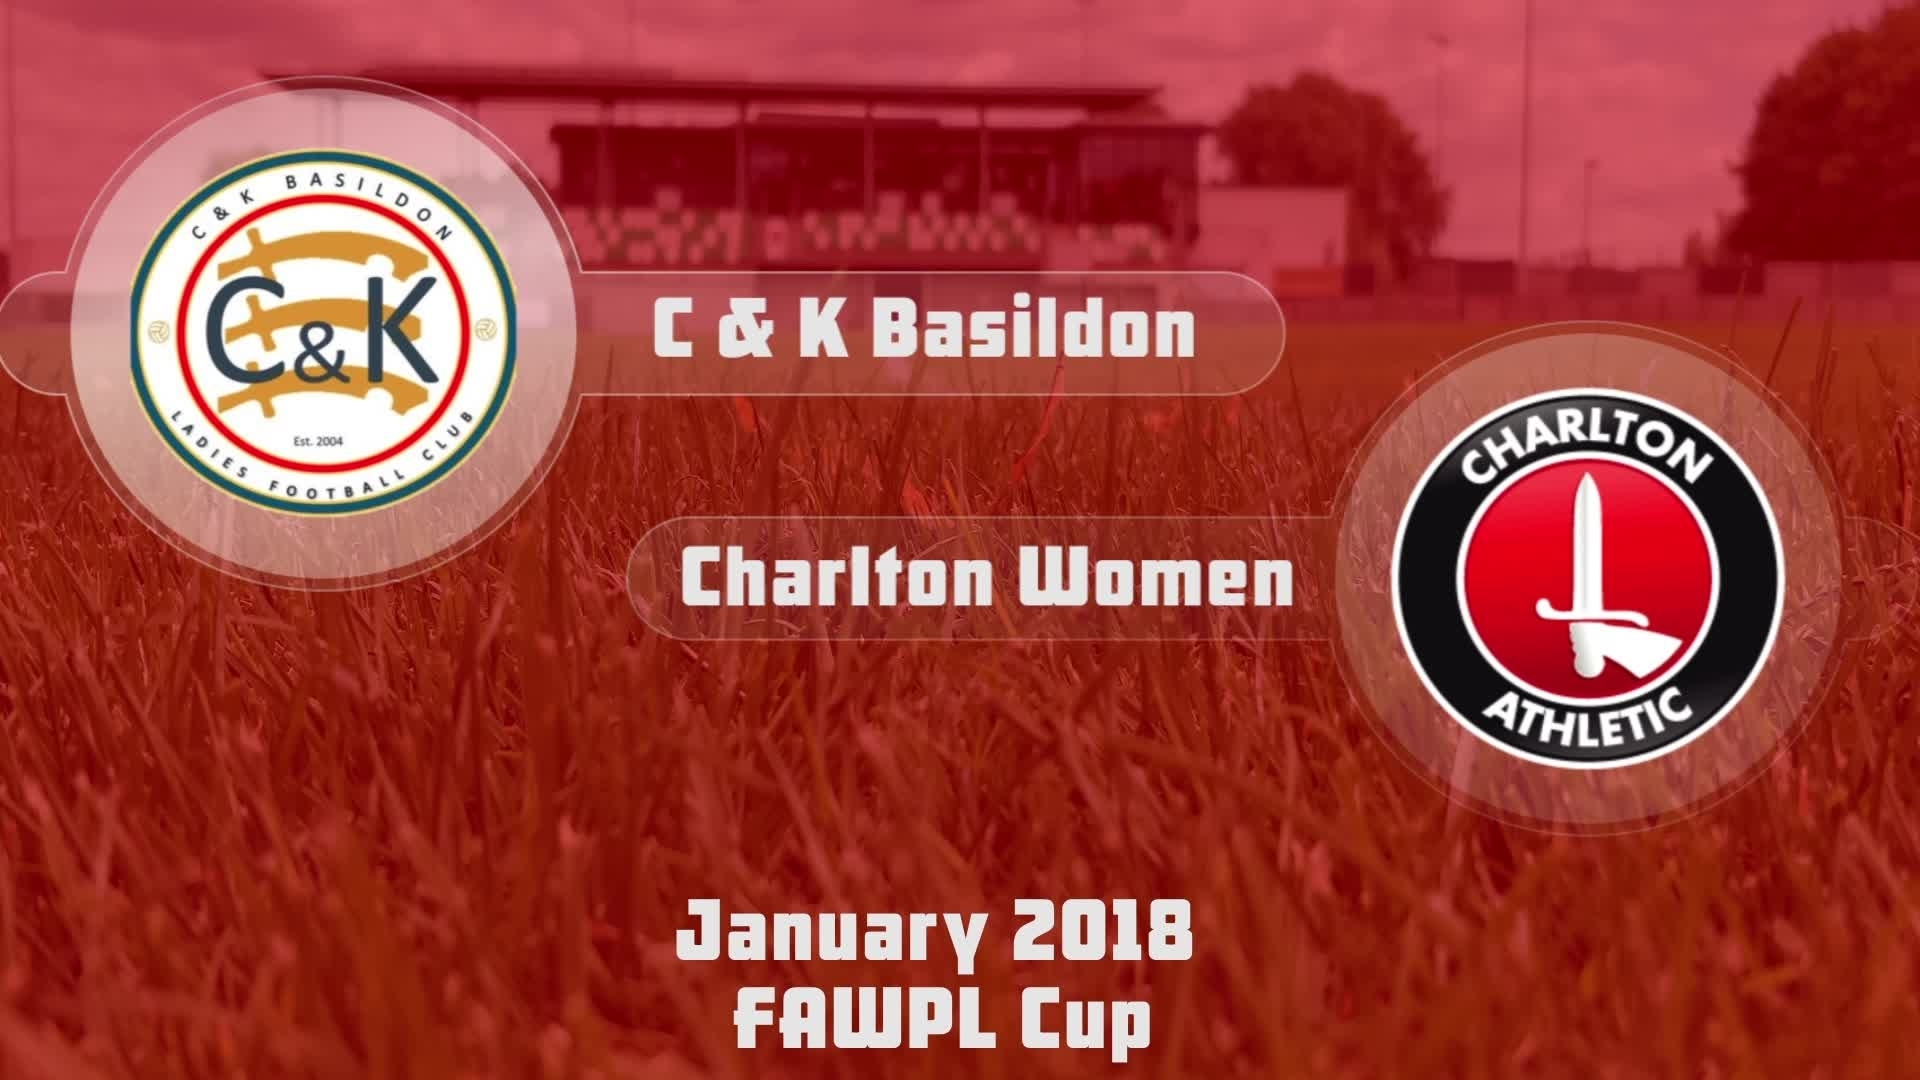 WOMEN HIGHLIGHTS | C & K Basildon 1 Charlton 2 (FAWPL Cup Jan 2018)